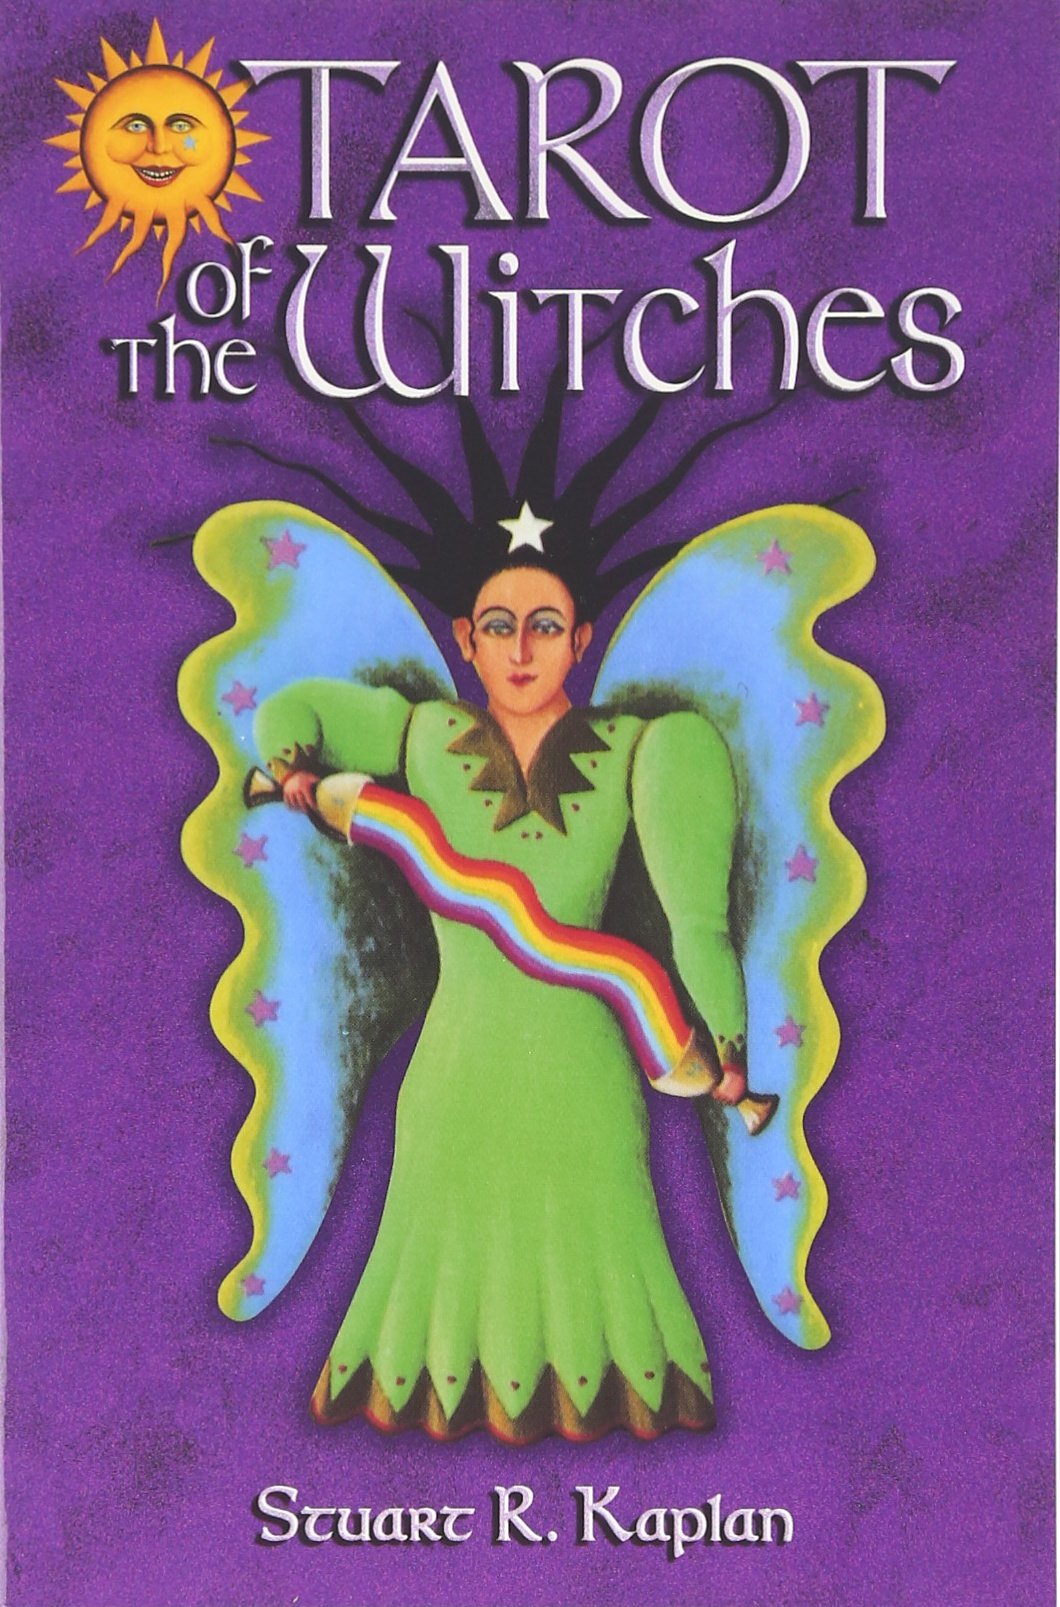 Download The Tarot of the Witches Book pdf epub